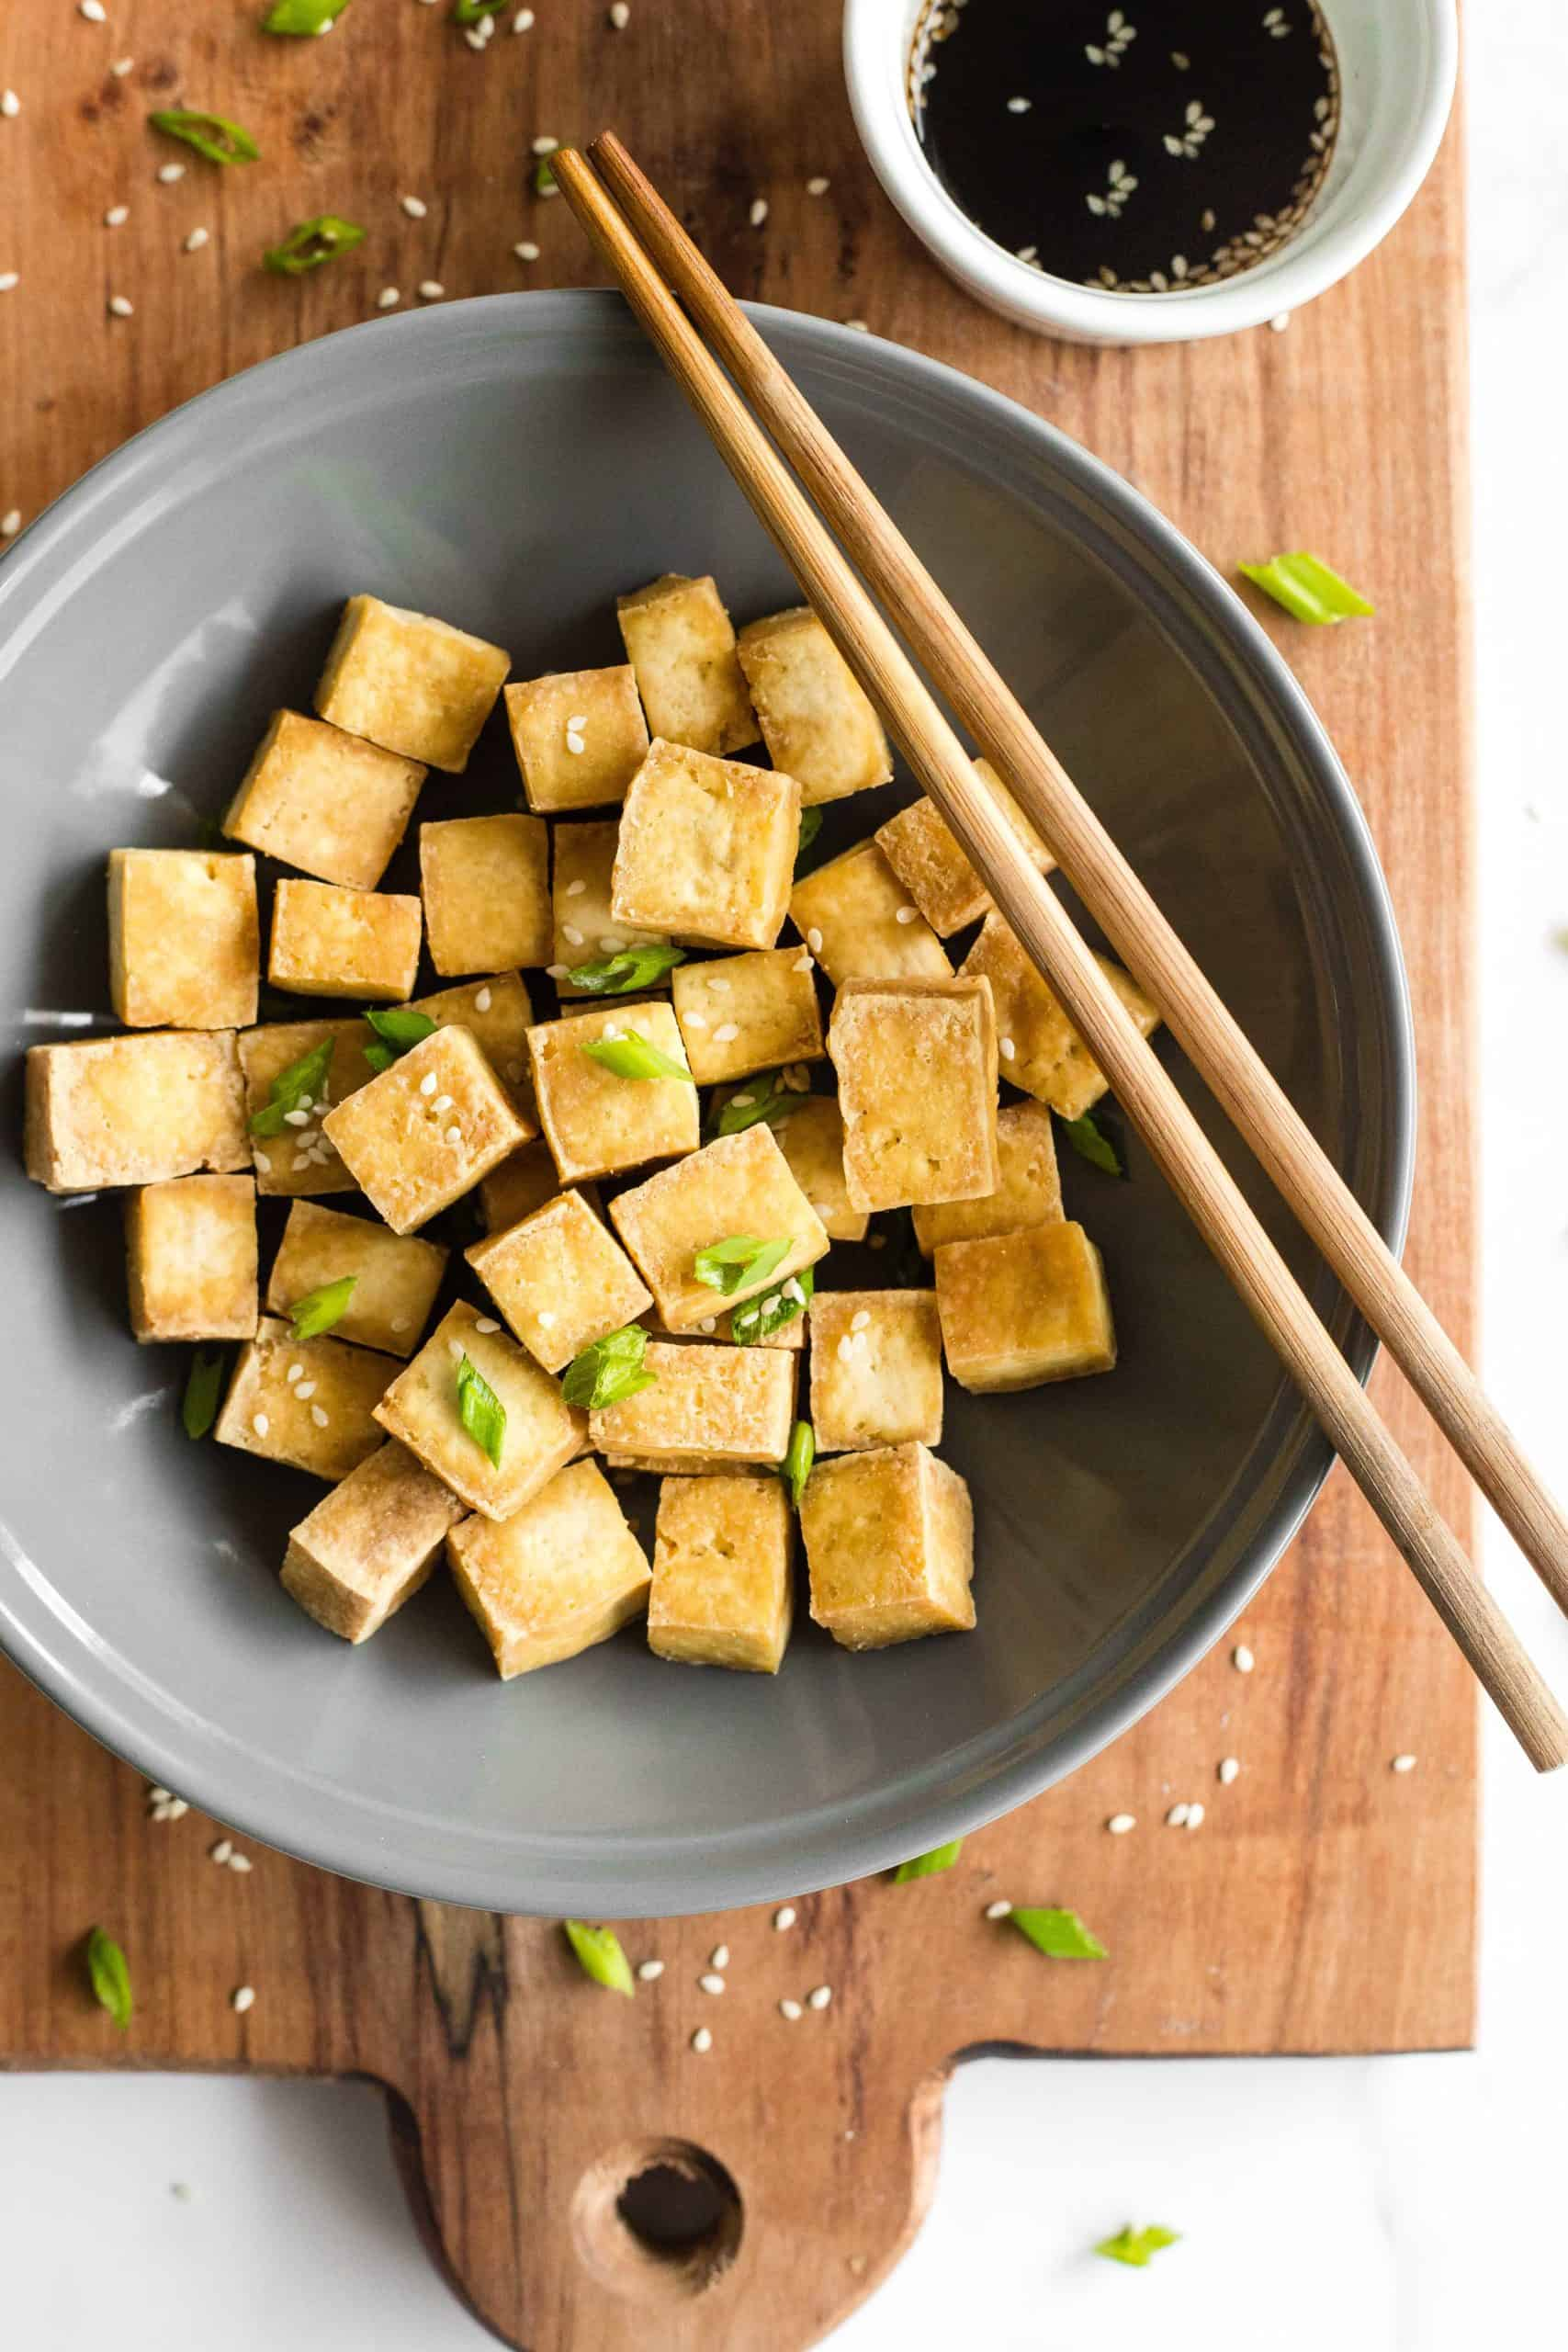 A bowl of crispy air fryer tofu cubes and chopsticks on a wooden board alongside a serving of soy sauce.